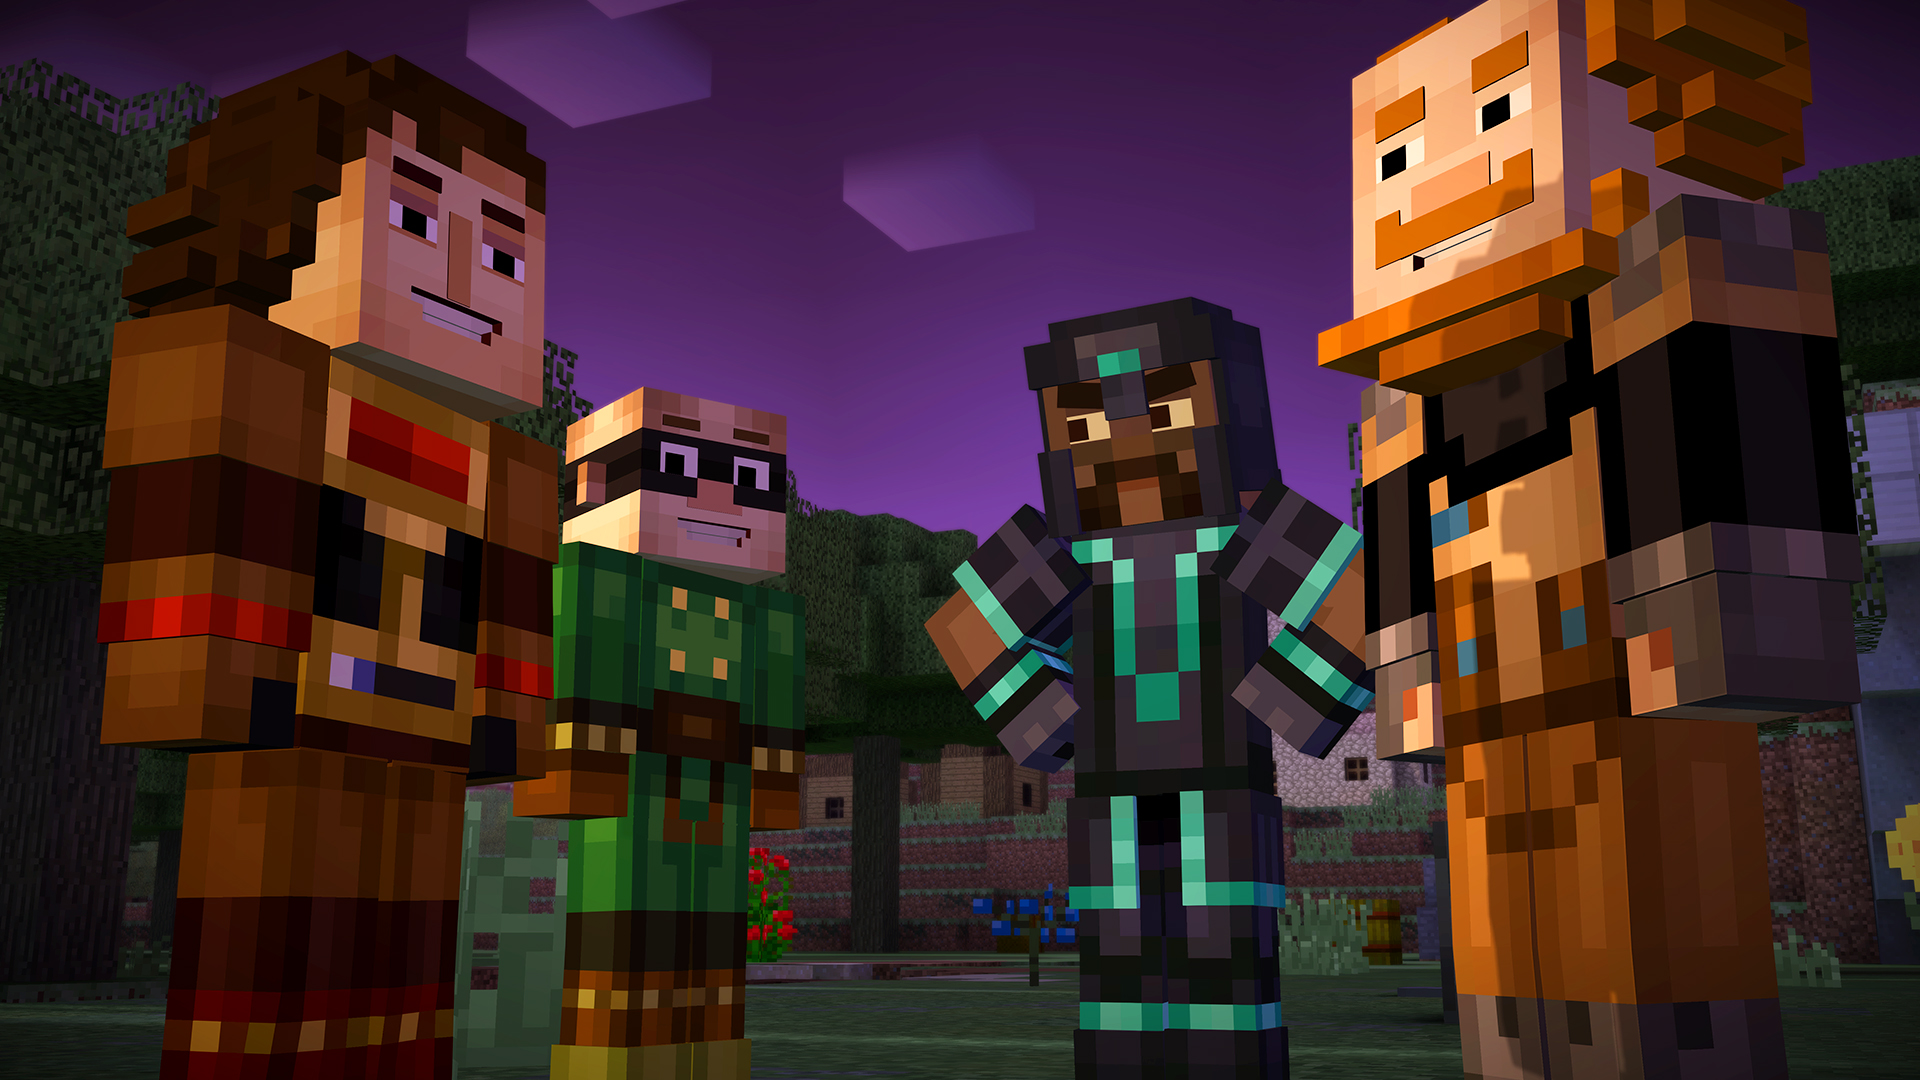 minecraft story mode episode 5 6 7 8 download